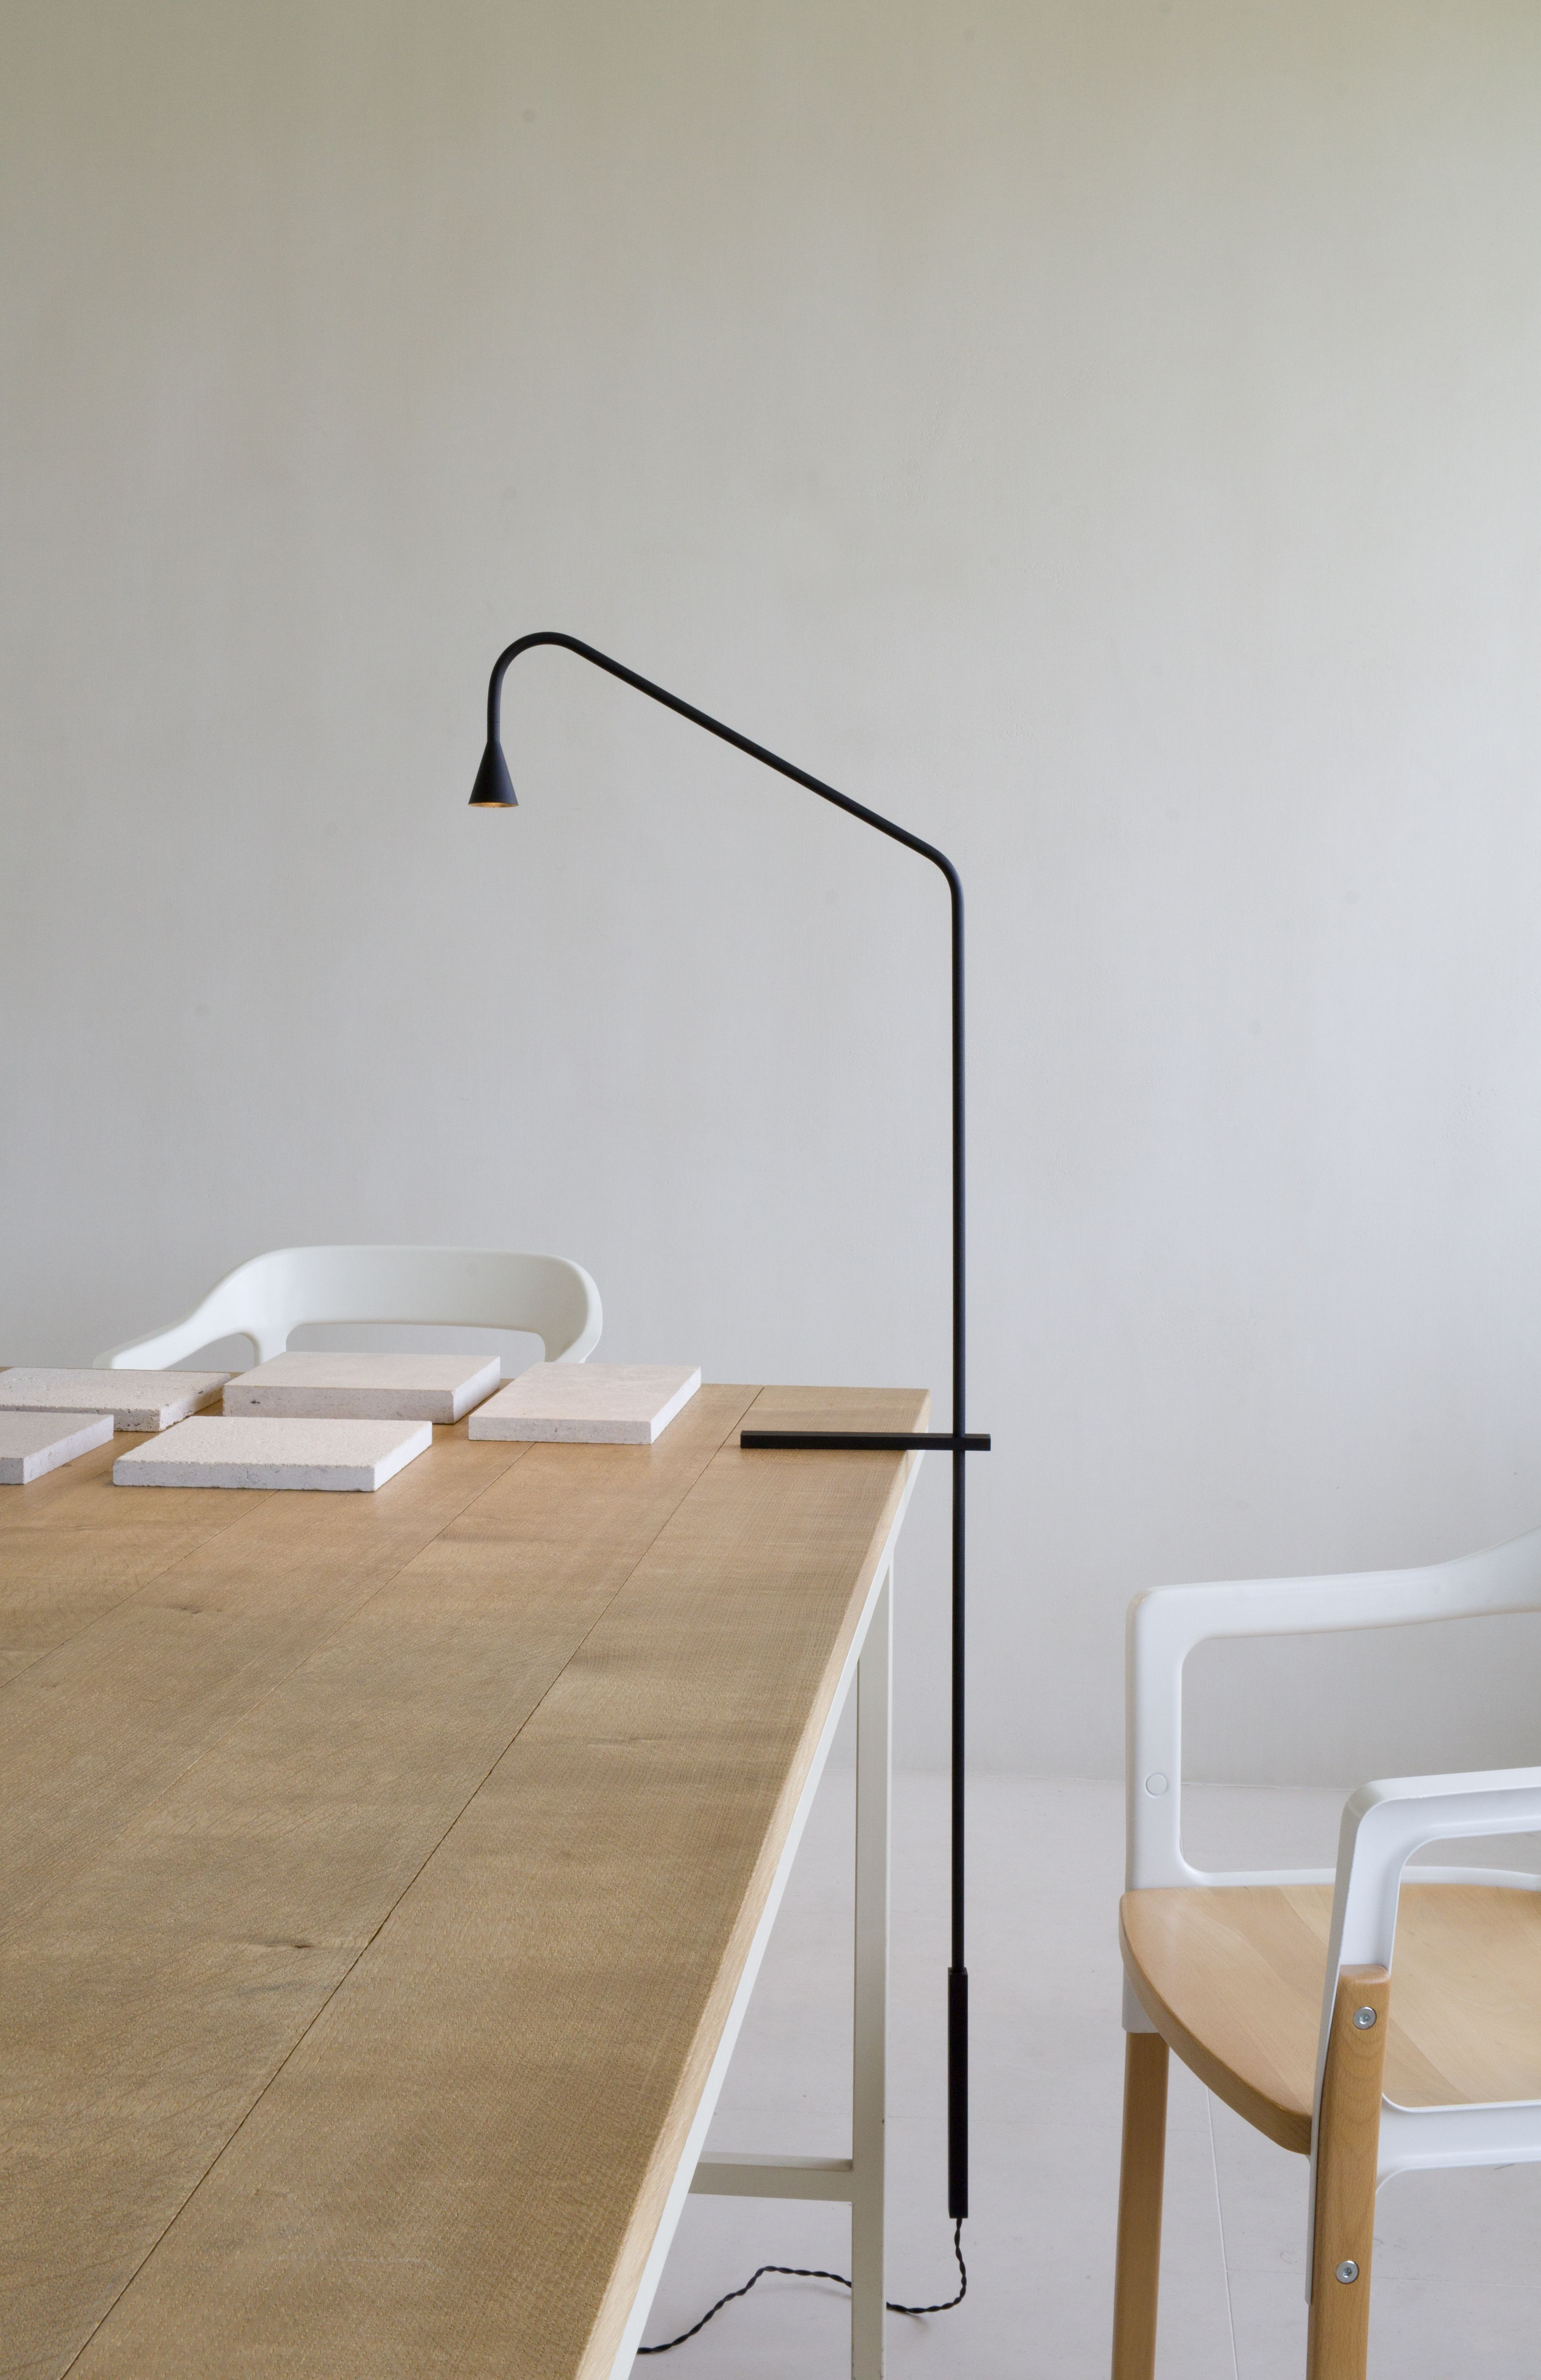 Pin de Humberto Bernal en Lighting | Diseño de muebles